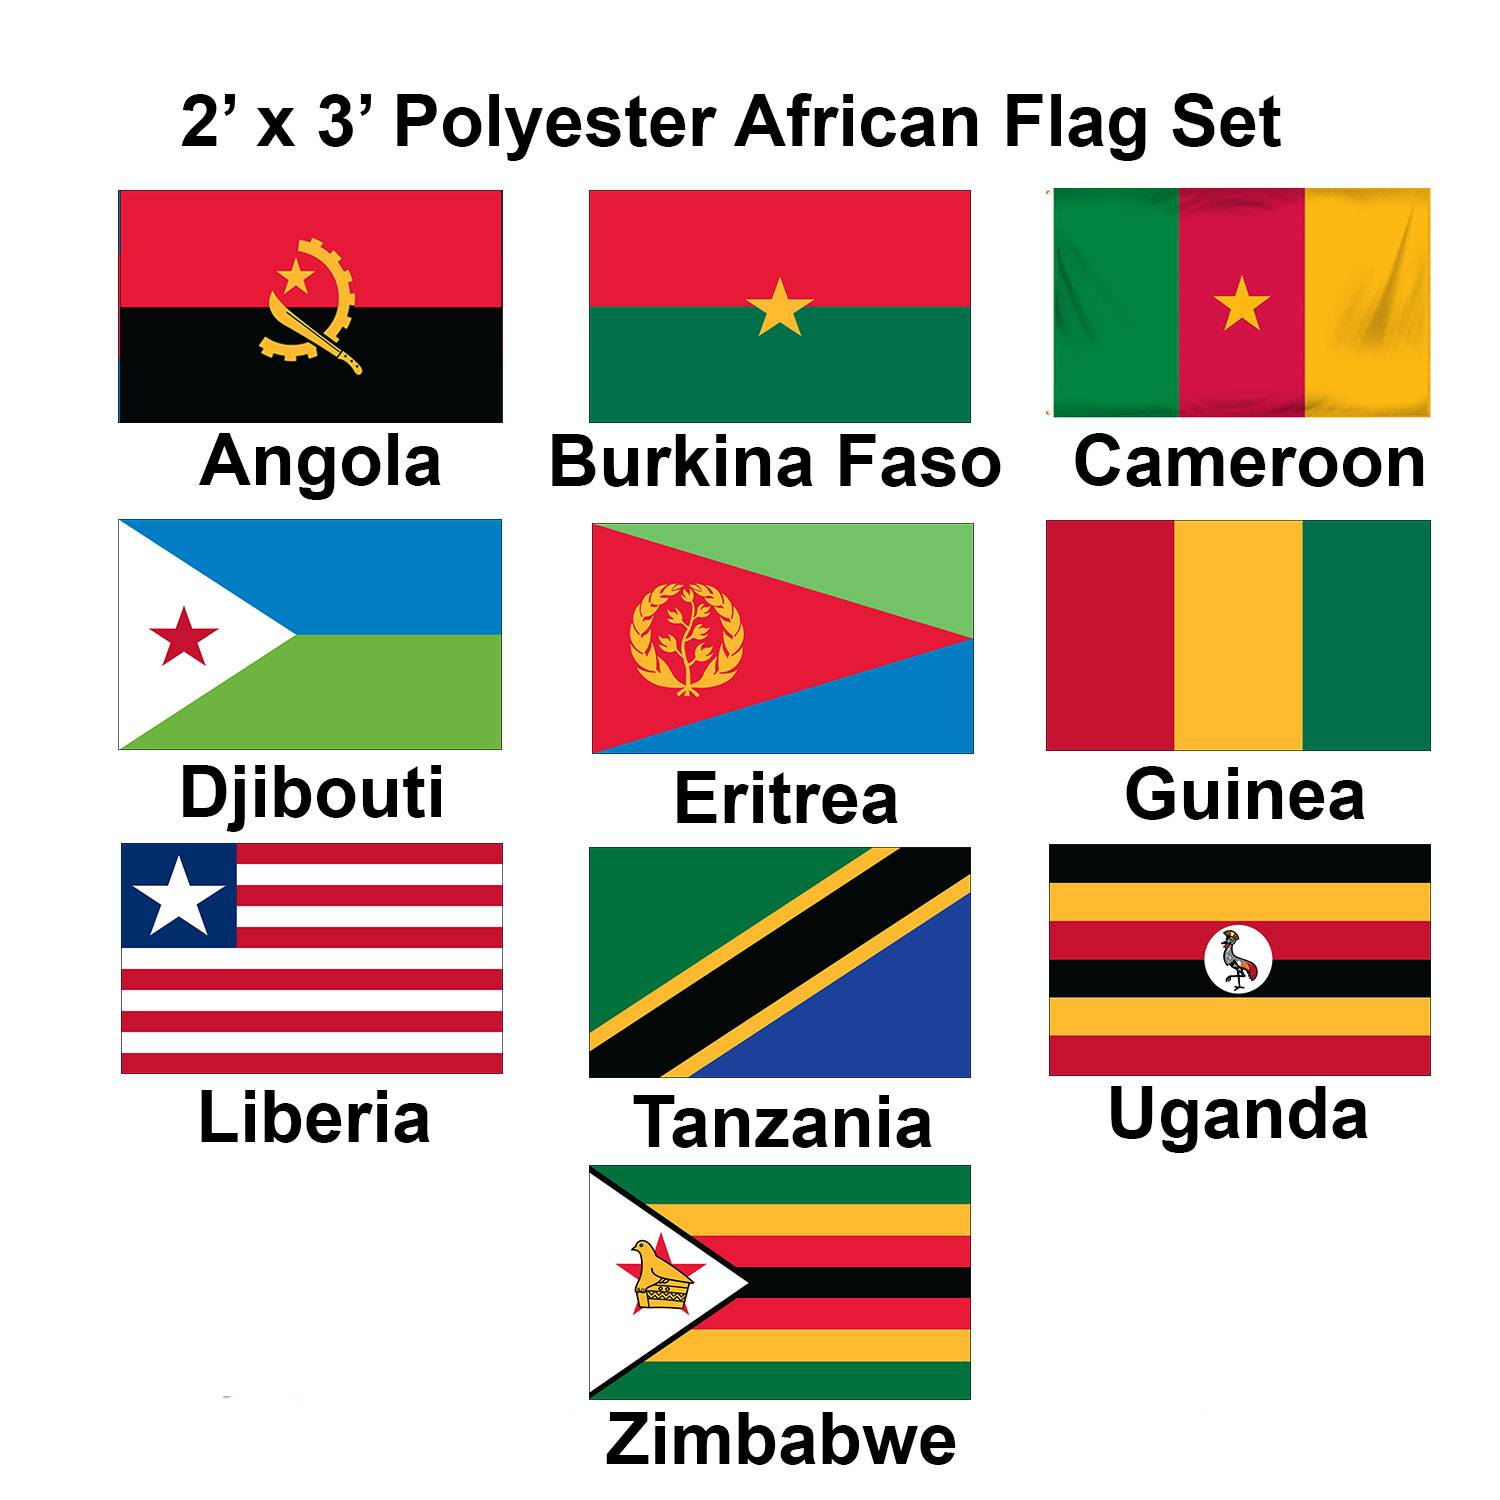 (2x3ft) Set of 10 African Flags - Set 2